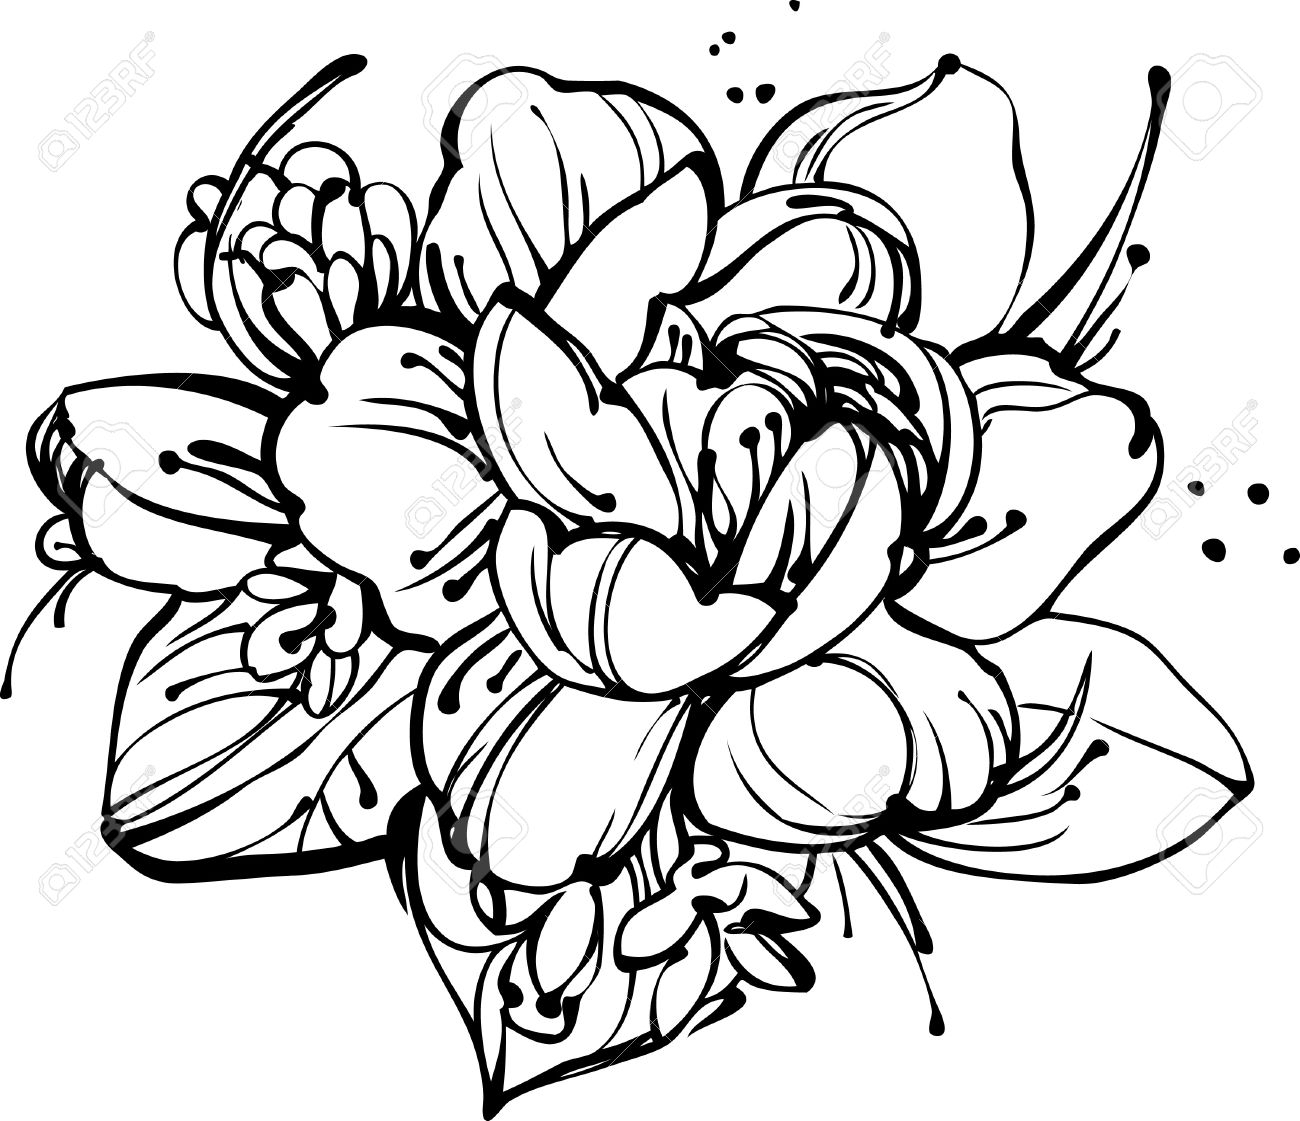 1300x1121 Flower Bunch Drawing Black And White Rose Flower Bunch Sketch